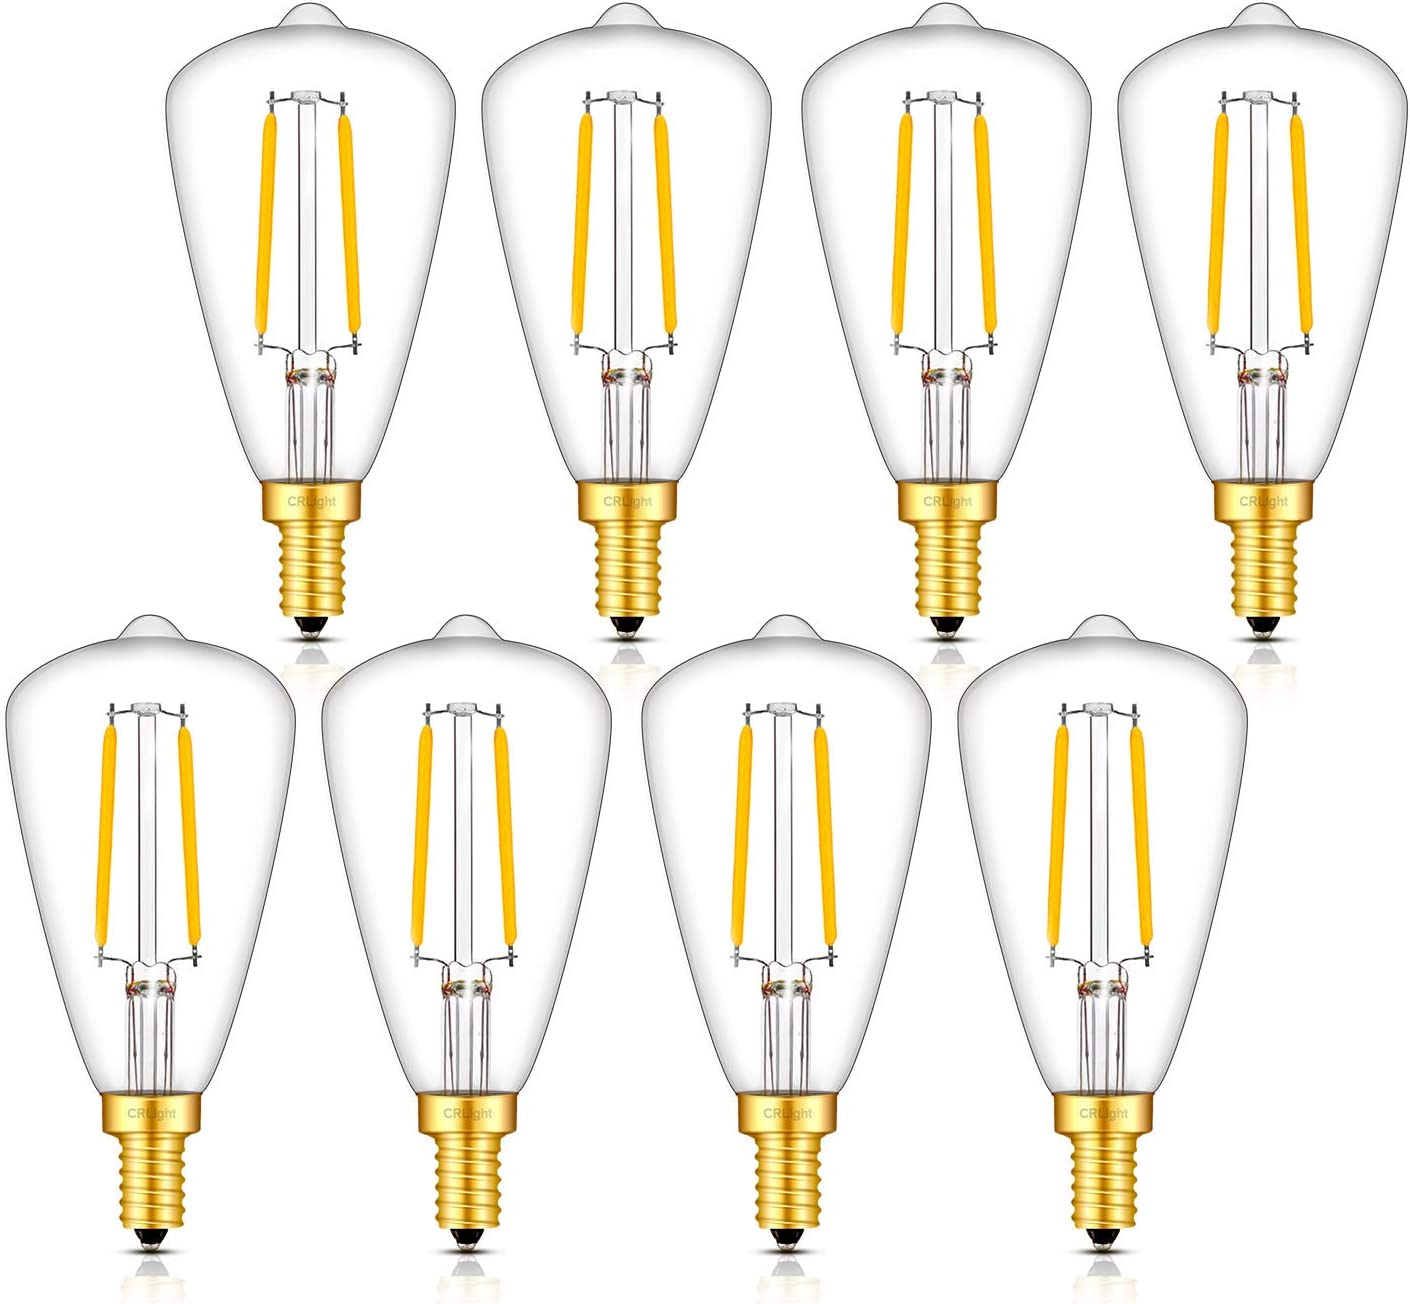 CRLight Candelabra Bulb 30W Equivalent 3000K Soft White 300LM Dimmable, 2W LED E12 Base Vintage Edison Style ST48 / ST14 Clear Glass LED Filament Light Bulbs, Pack of 8